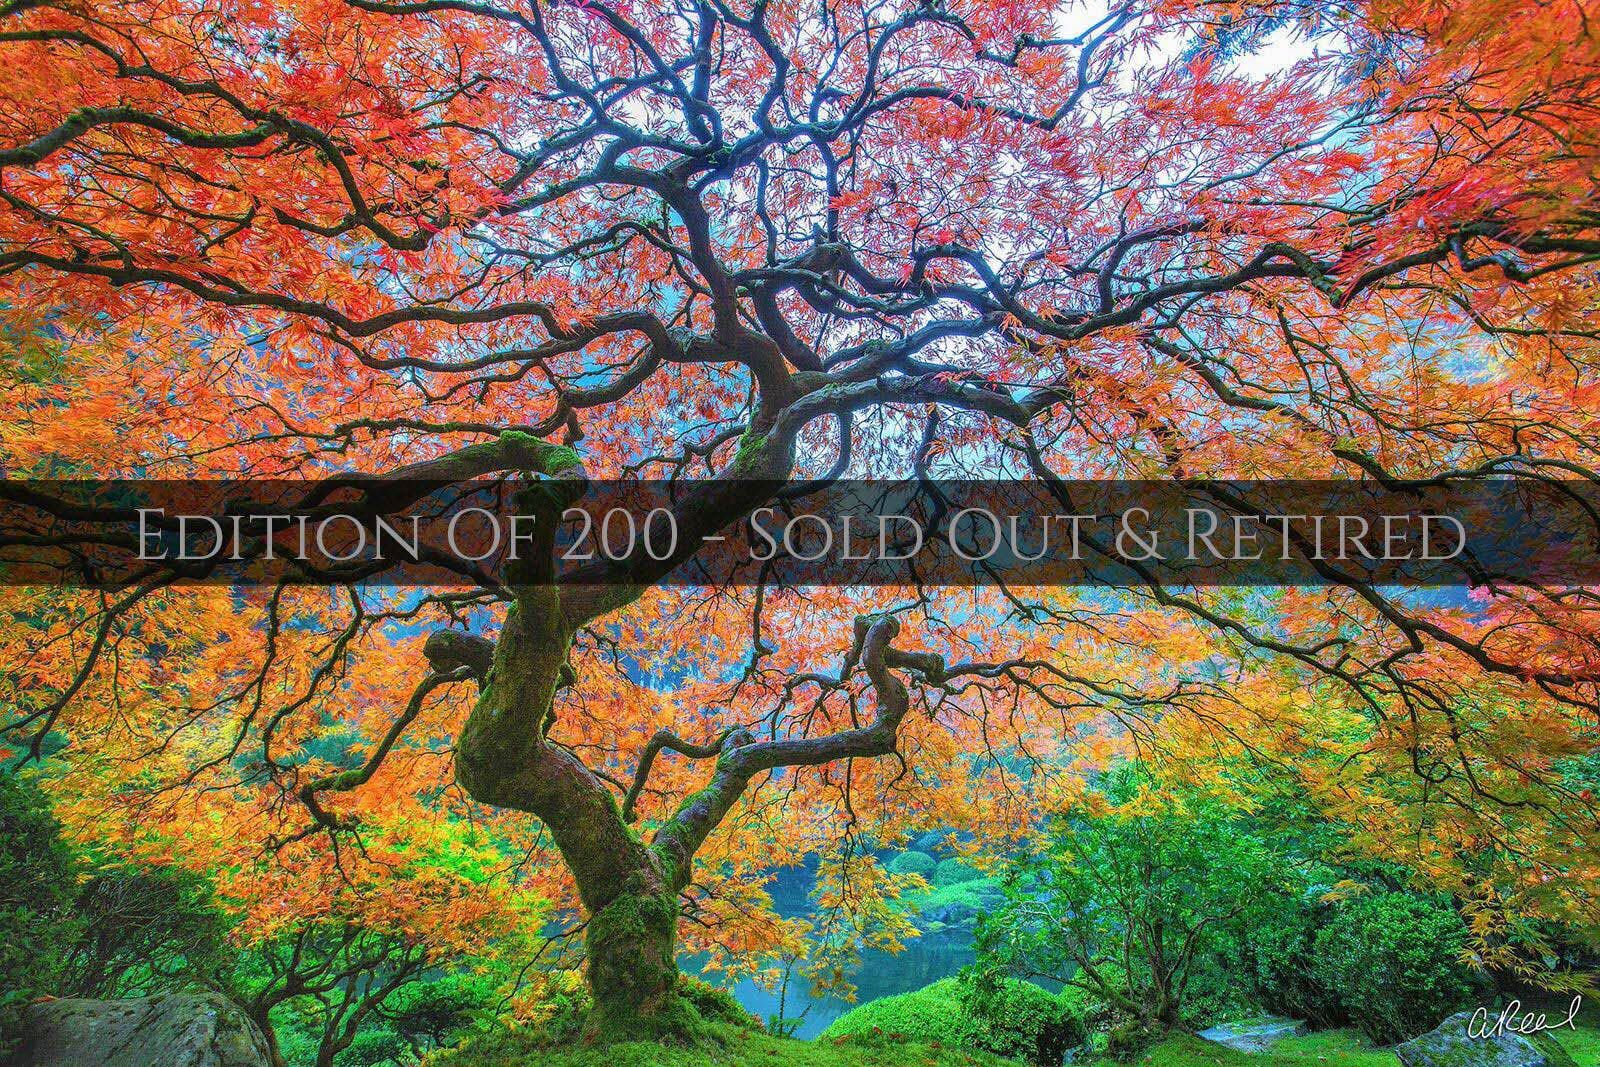 A photograph of a Japanese maple tree with rainbow colored leaves on a foggy morning in a Japanese Garden.